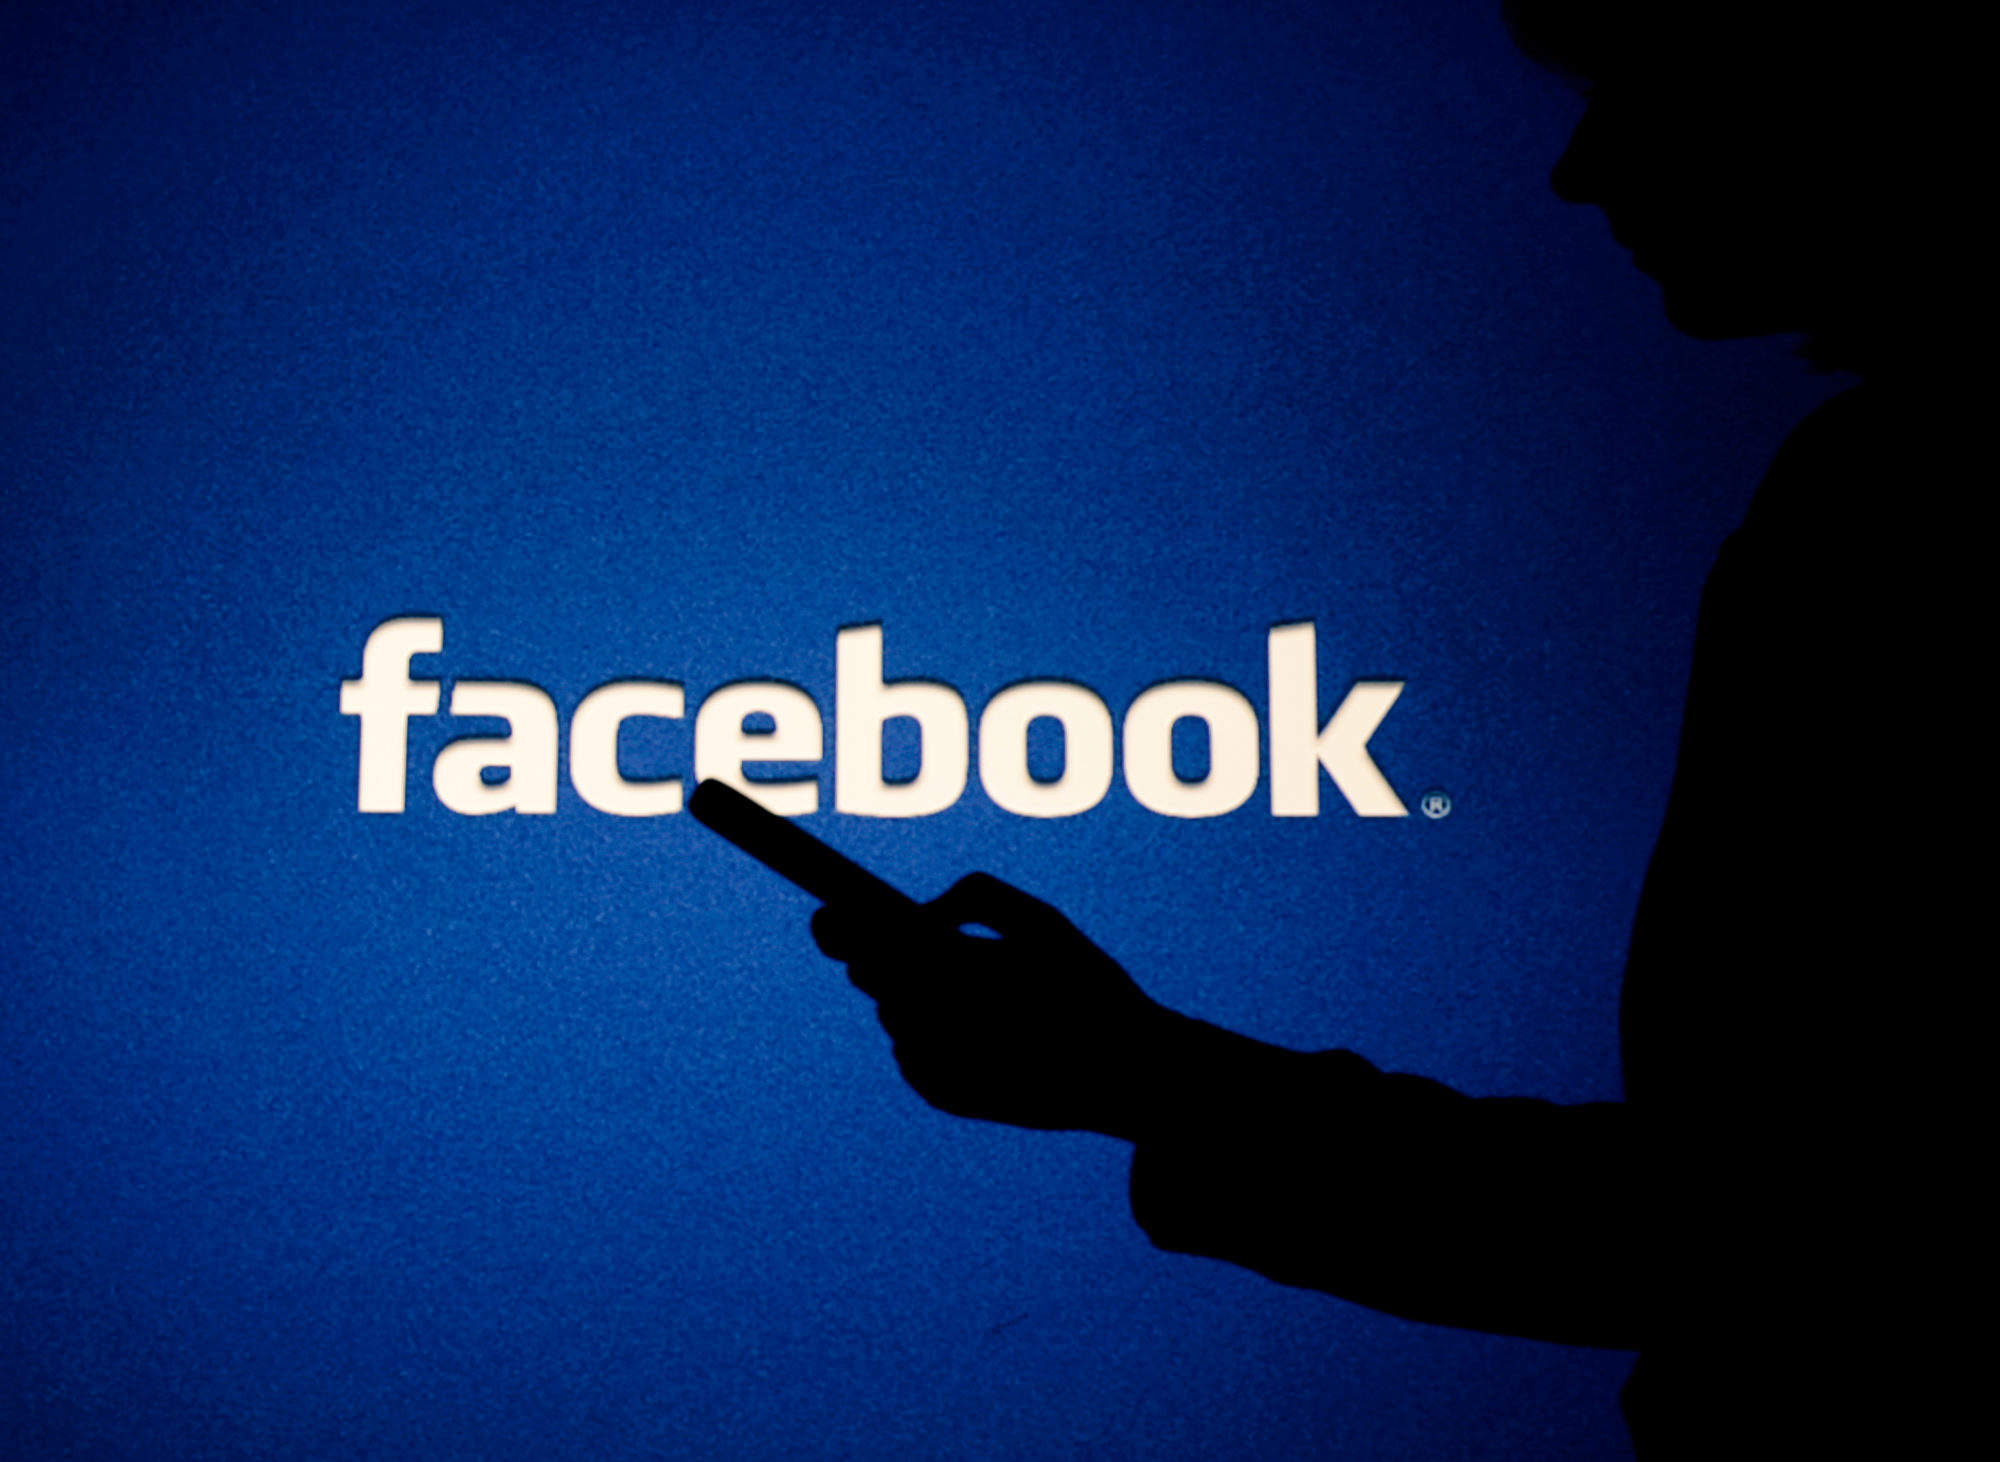 Facebook's record Q1 results: Users and investors unconcerned by privacy issues